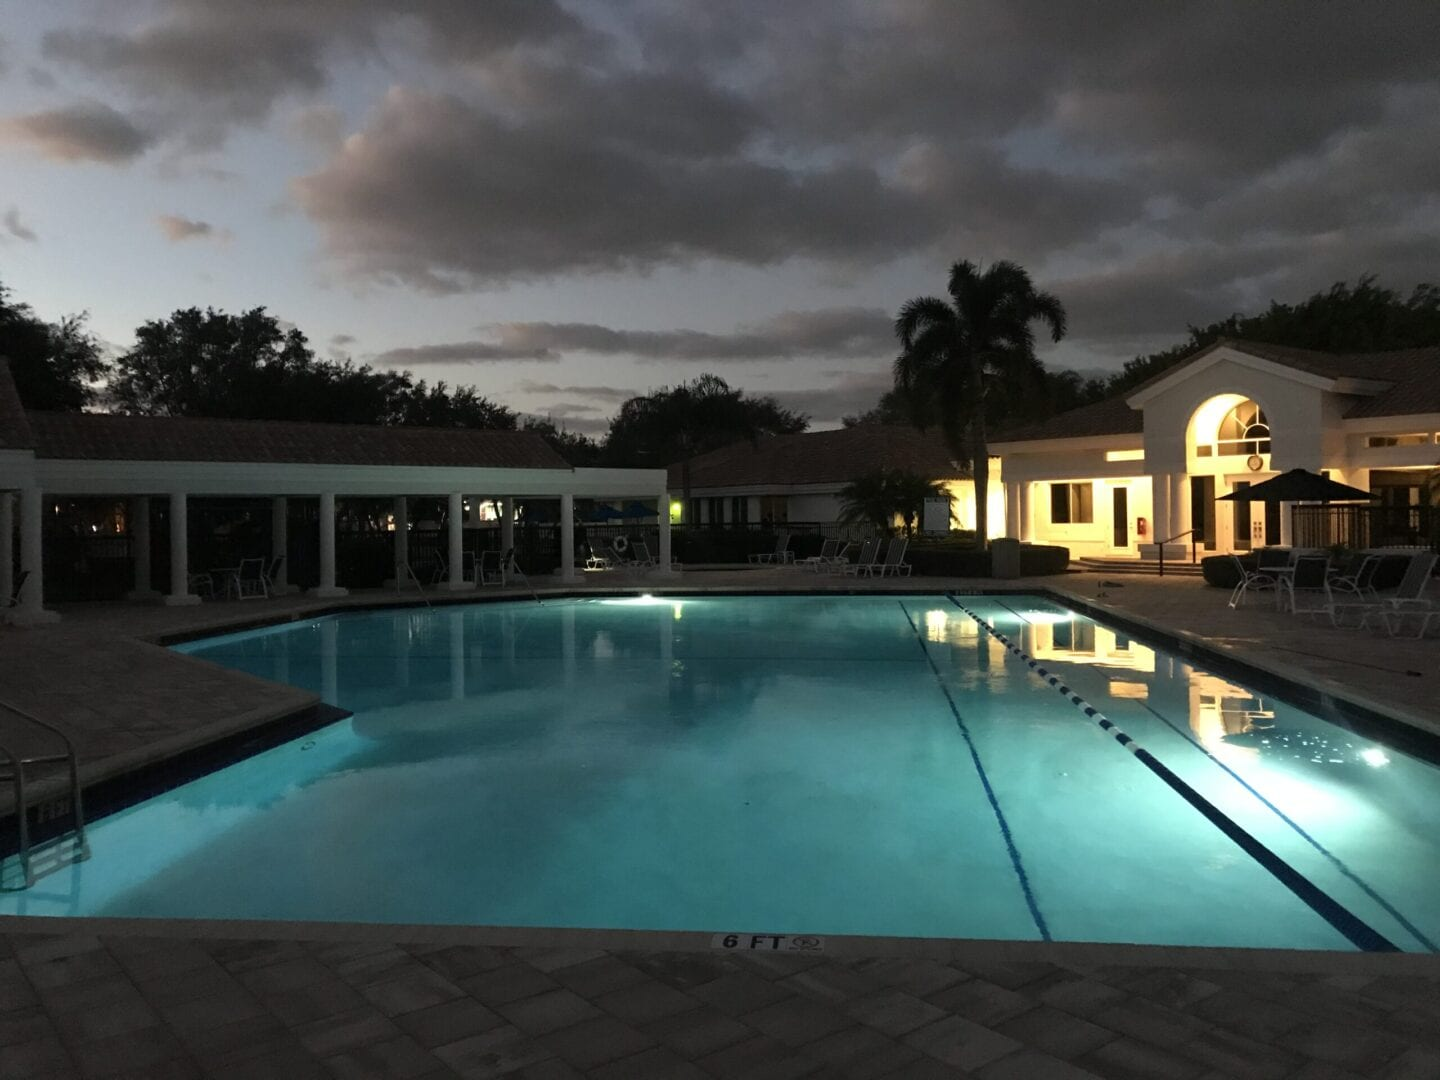 Pool with pool rope surrounded by white outdoor patios and a white house (at night)